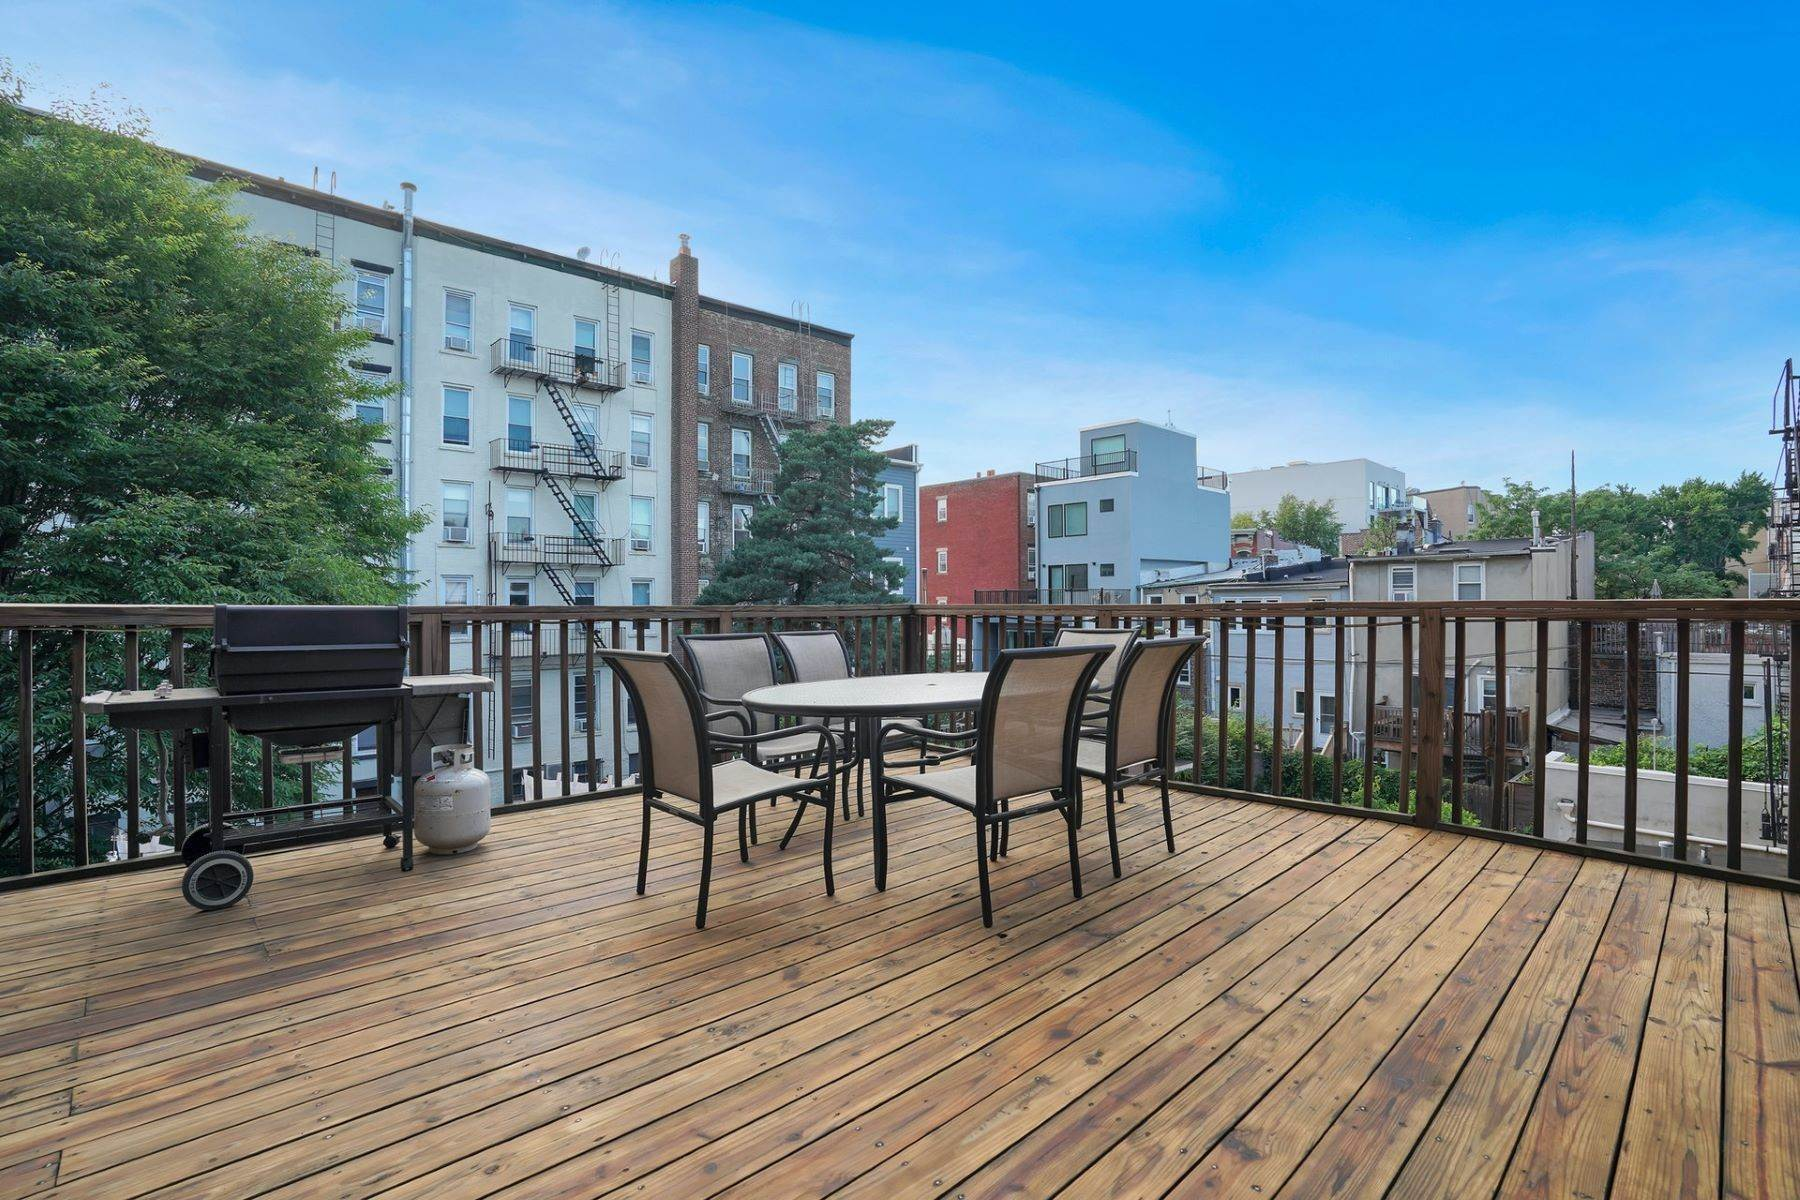 Condominiums at YOUR DREAM HOME. Large Deck and Two Bedrooms Beautiful Condo. 626 Park Avenue, Unit 2 Hoboken, New Jersey 07030 United States